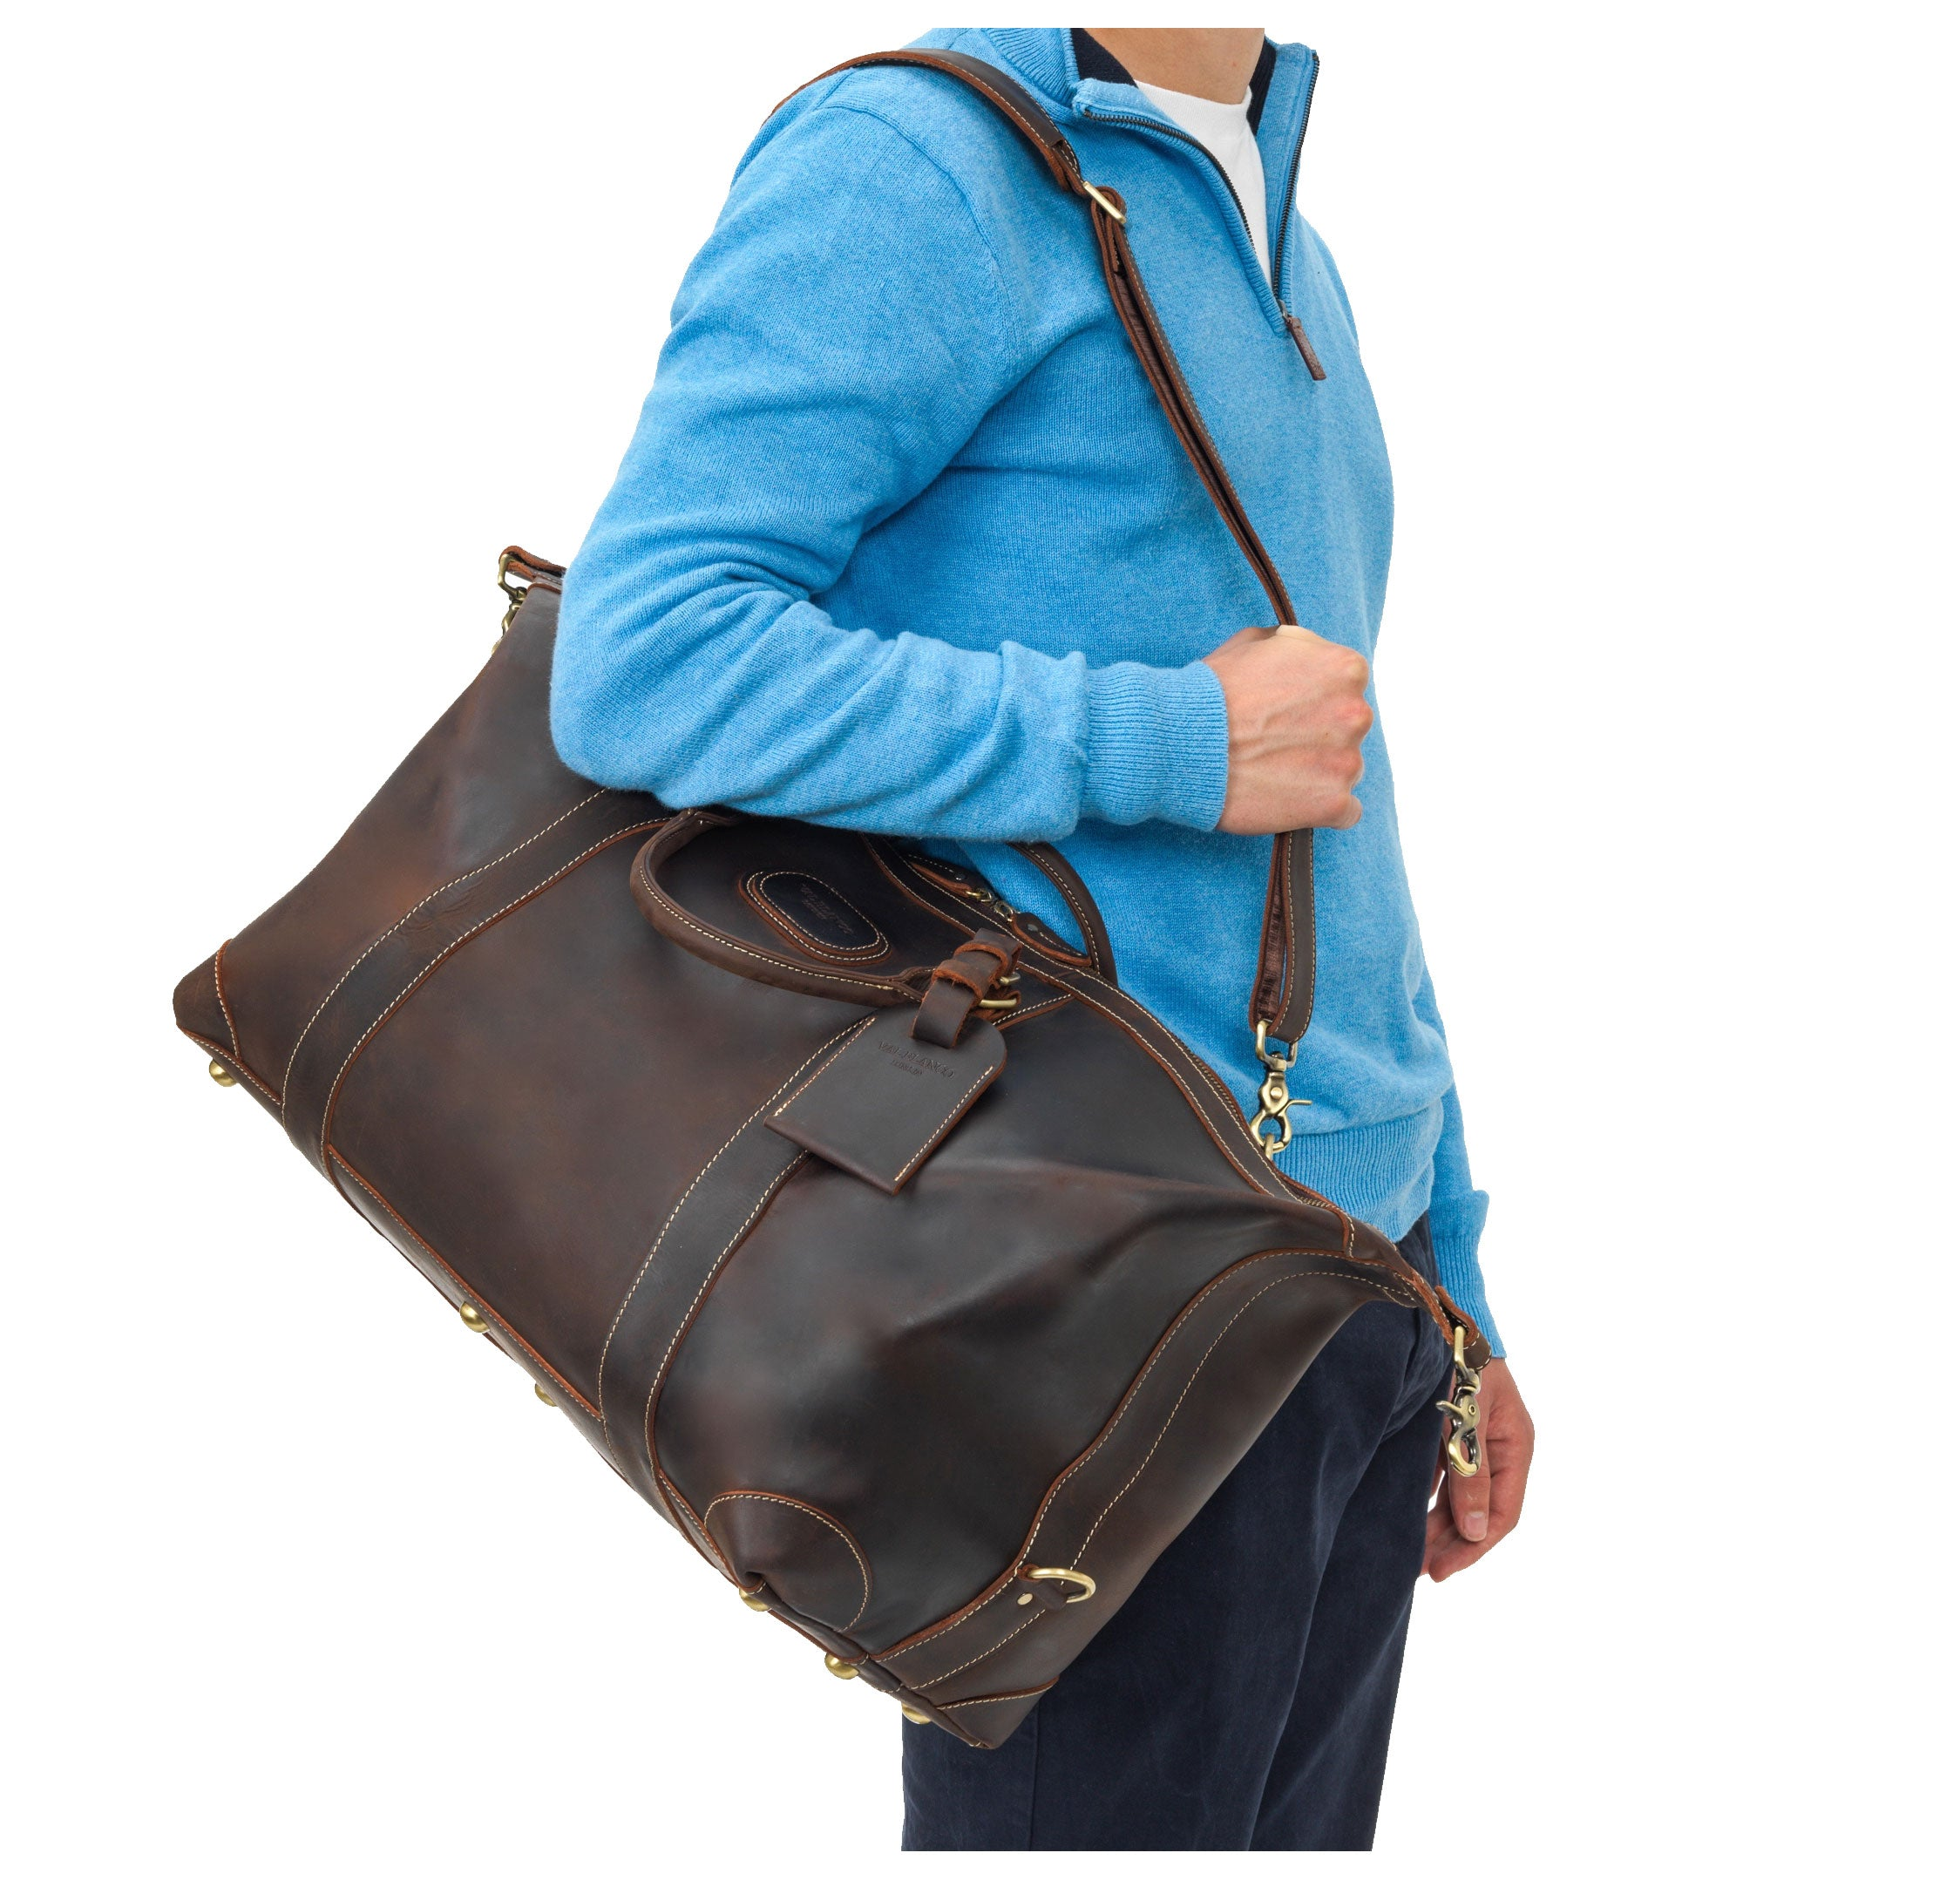 man with a leather bag over his shoulder